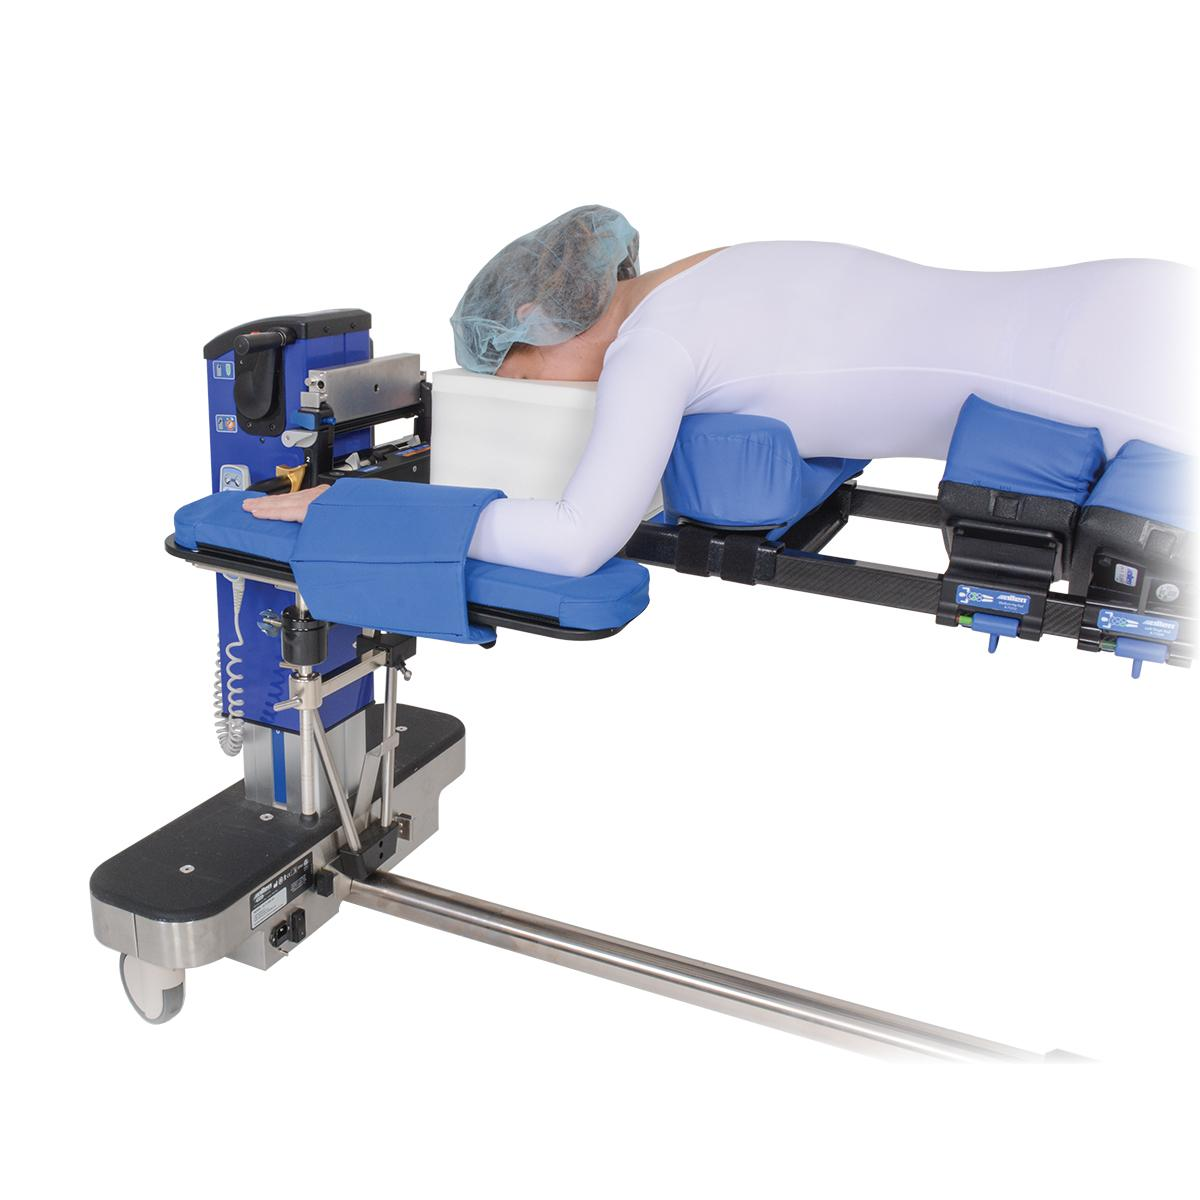 Advance Table Pinless H-Bracket, with patient in high position